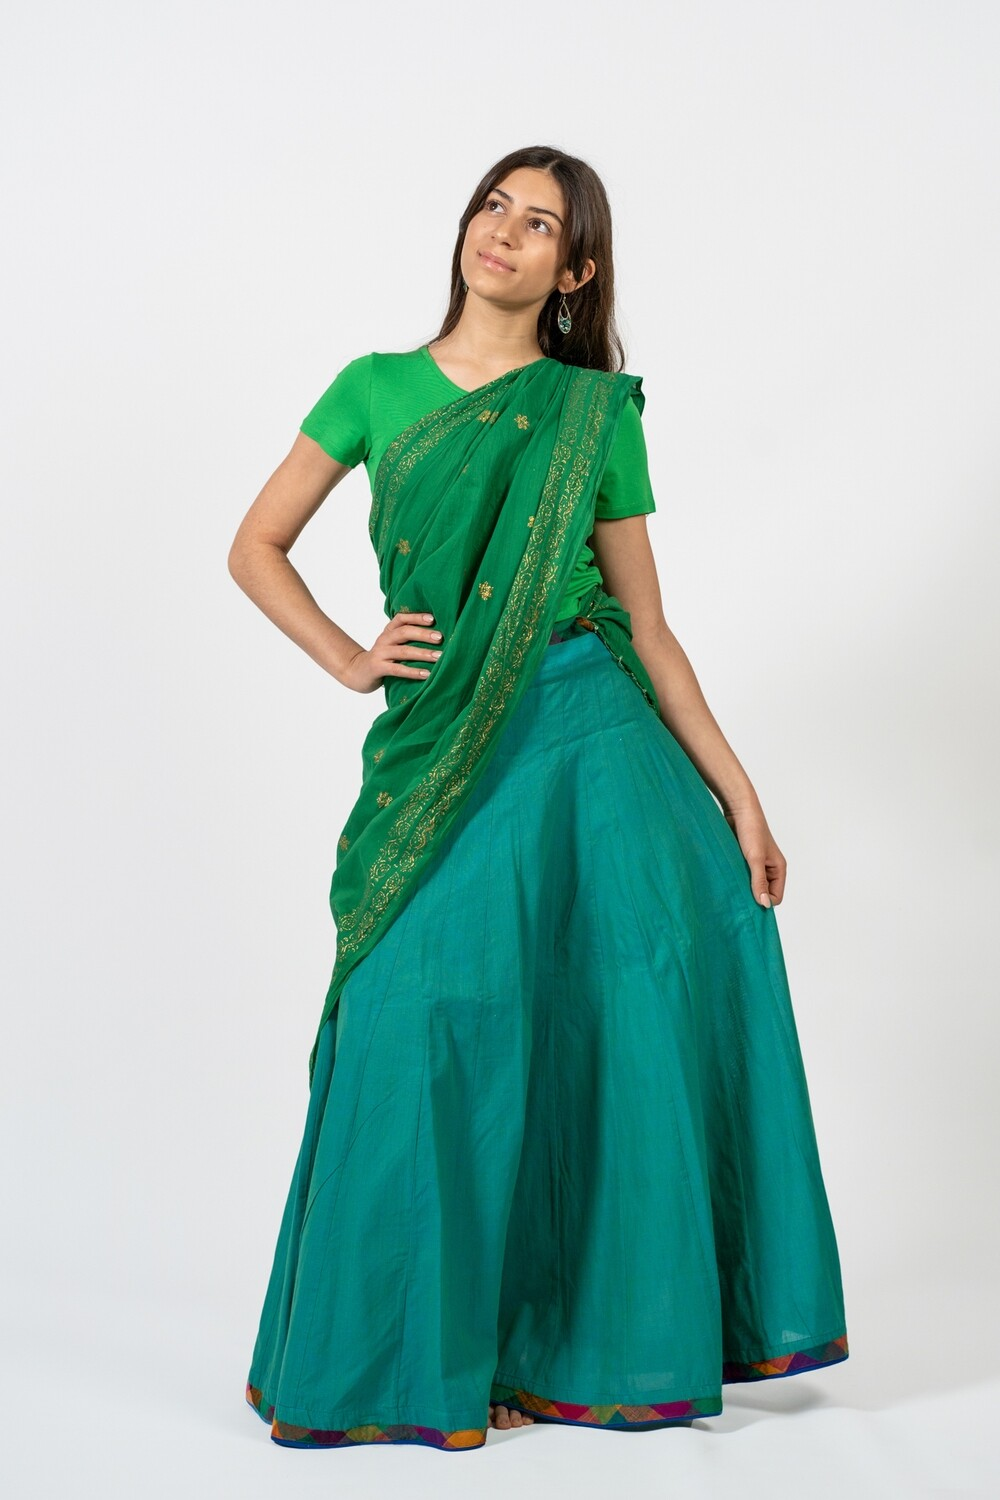 Skirts in Green, size 'S' (EU 36)